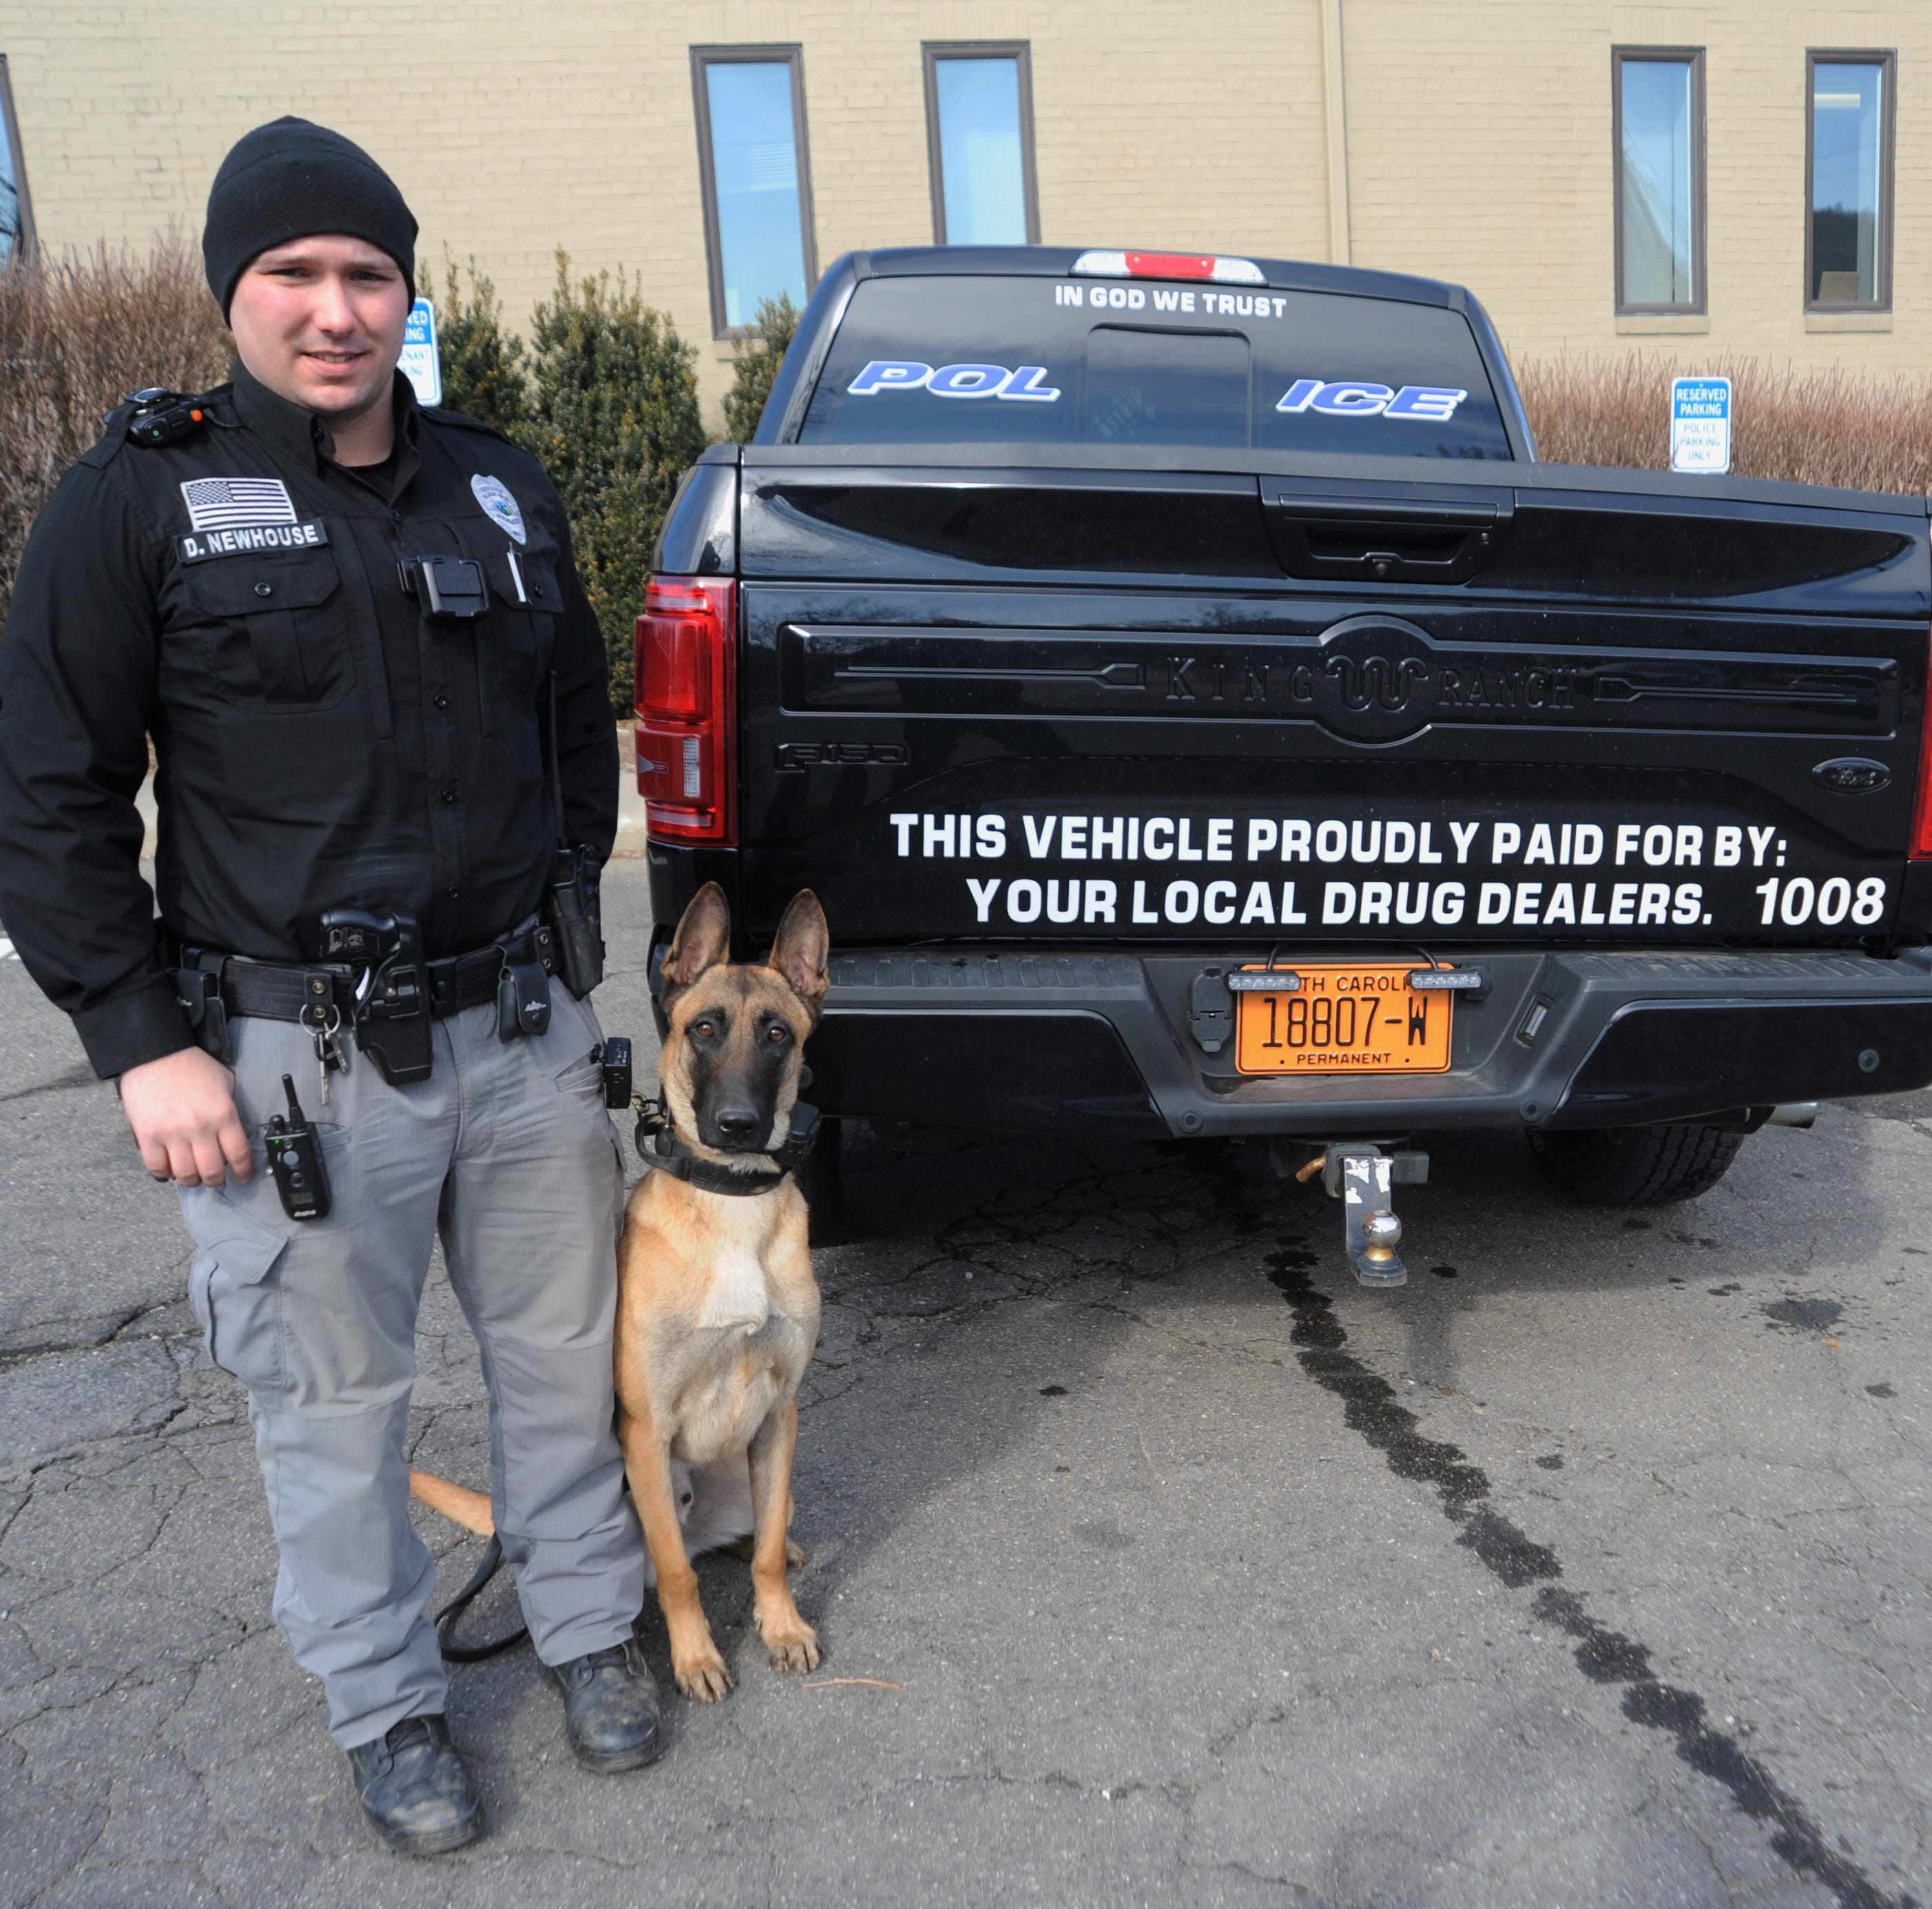 Black Mountain K-9 vehicle sends message to drug dealers